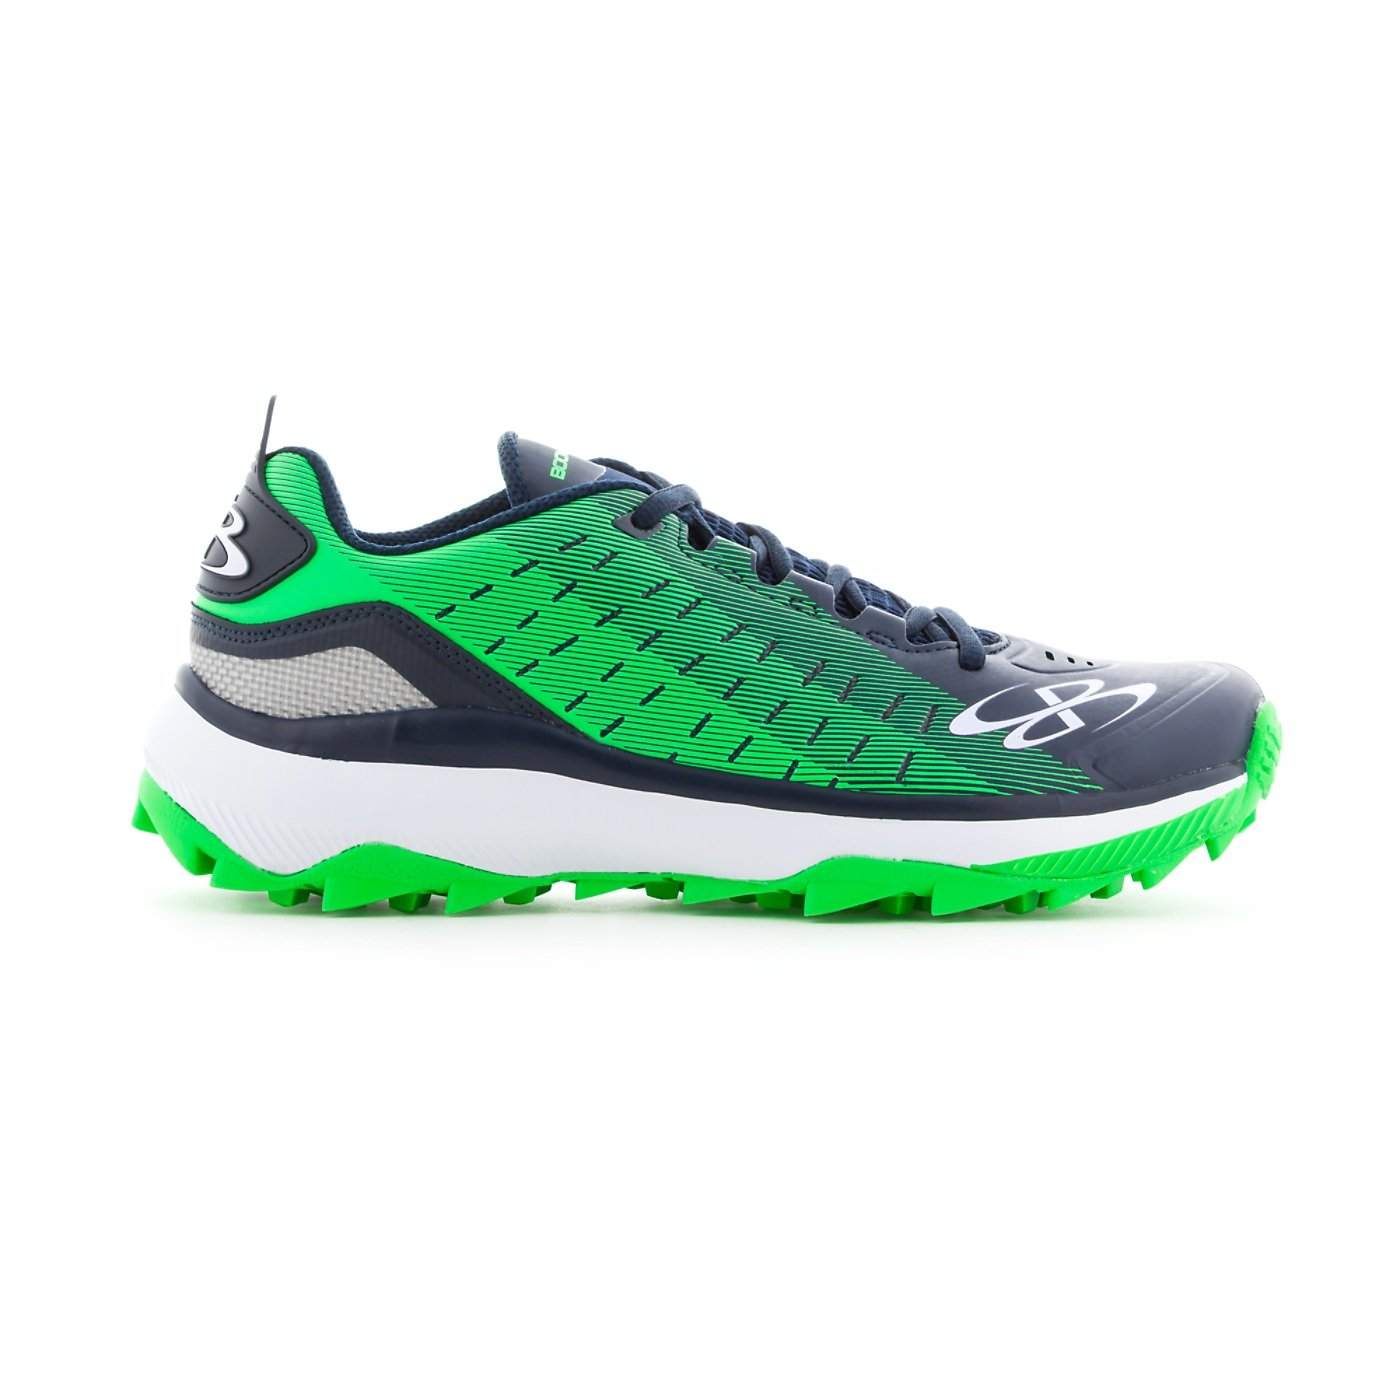 Boombah Men's Catalyst Turf Navy/Lime Green - Size 10 by Boombah